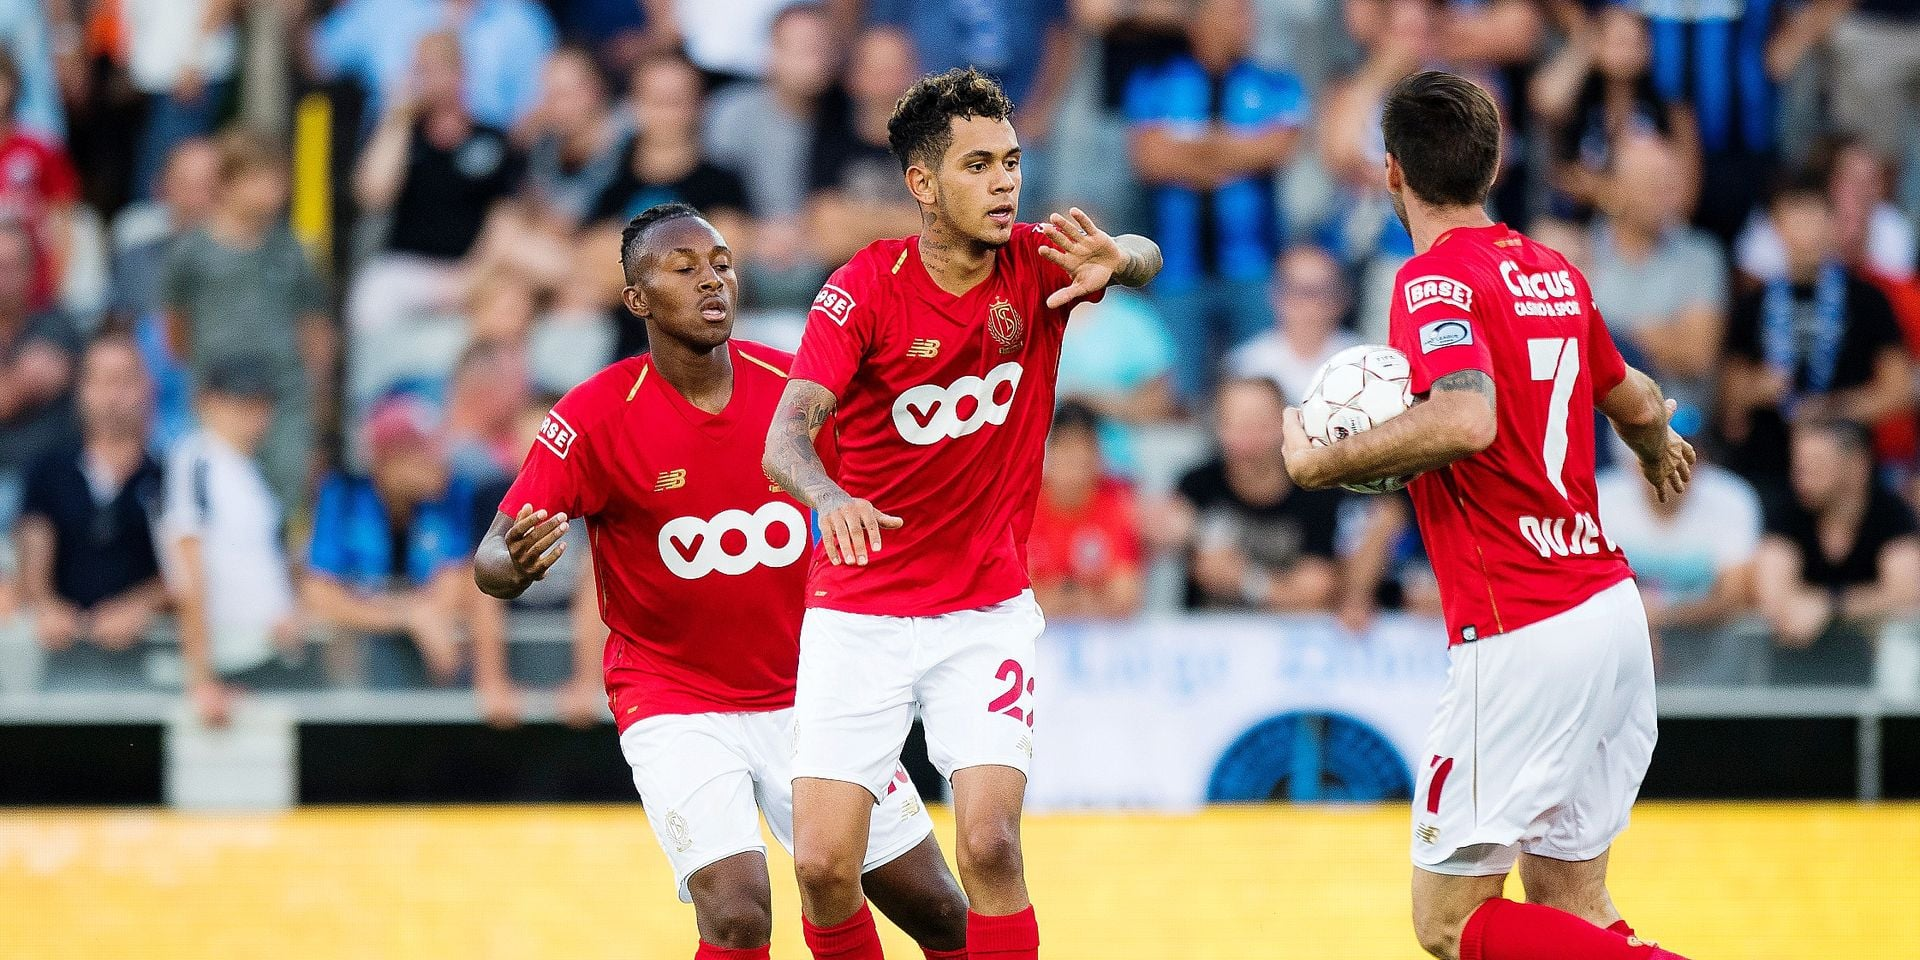 Standard's Junior Edmilson (C) celebrates after scoring during a soccer game between Club Brugge and Standard de Liege, the supercup match between the respective champion of the Jupiler Pro League and the Belgian cup winner, Sunday 22 July 2018, in Brugge. BELGA PHOTO JASPER JACOBS